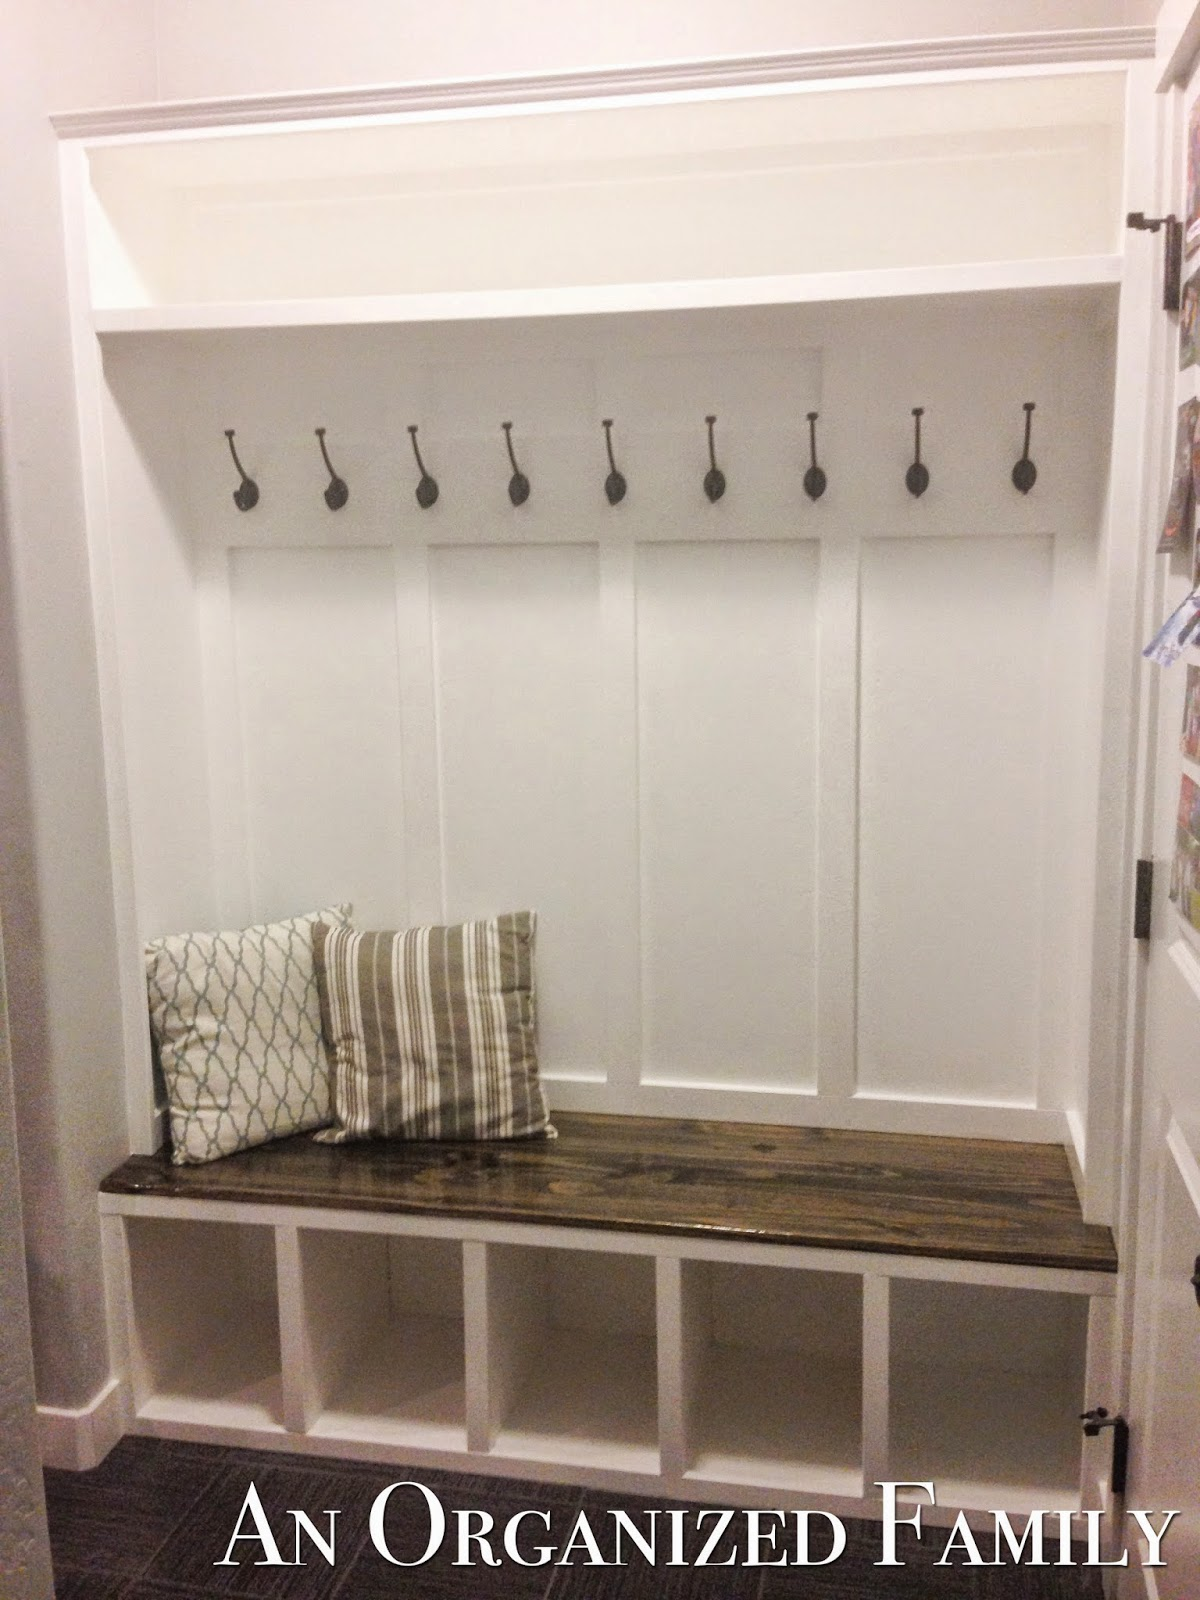 Hand Coat Hooks Nissa Lynn Interiors How To Build A Mudroom Bench By Amanda